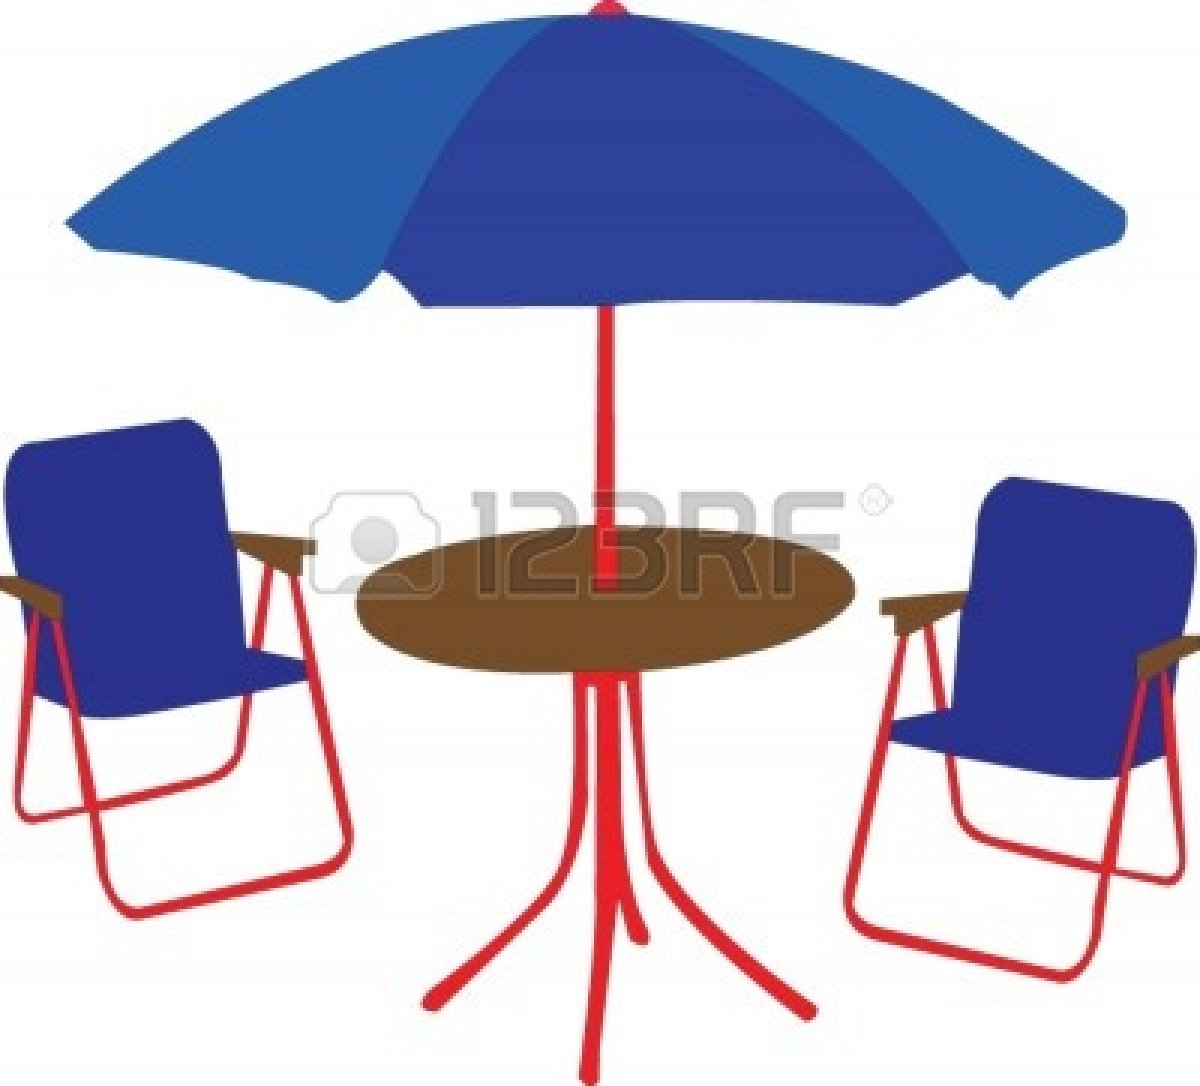 Patio Table With Umbrella Clipart   Free Clip Art Images